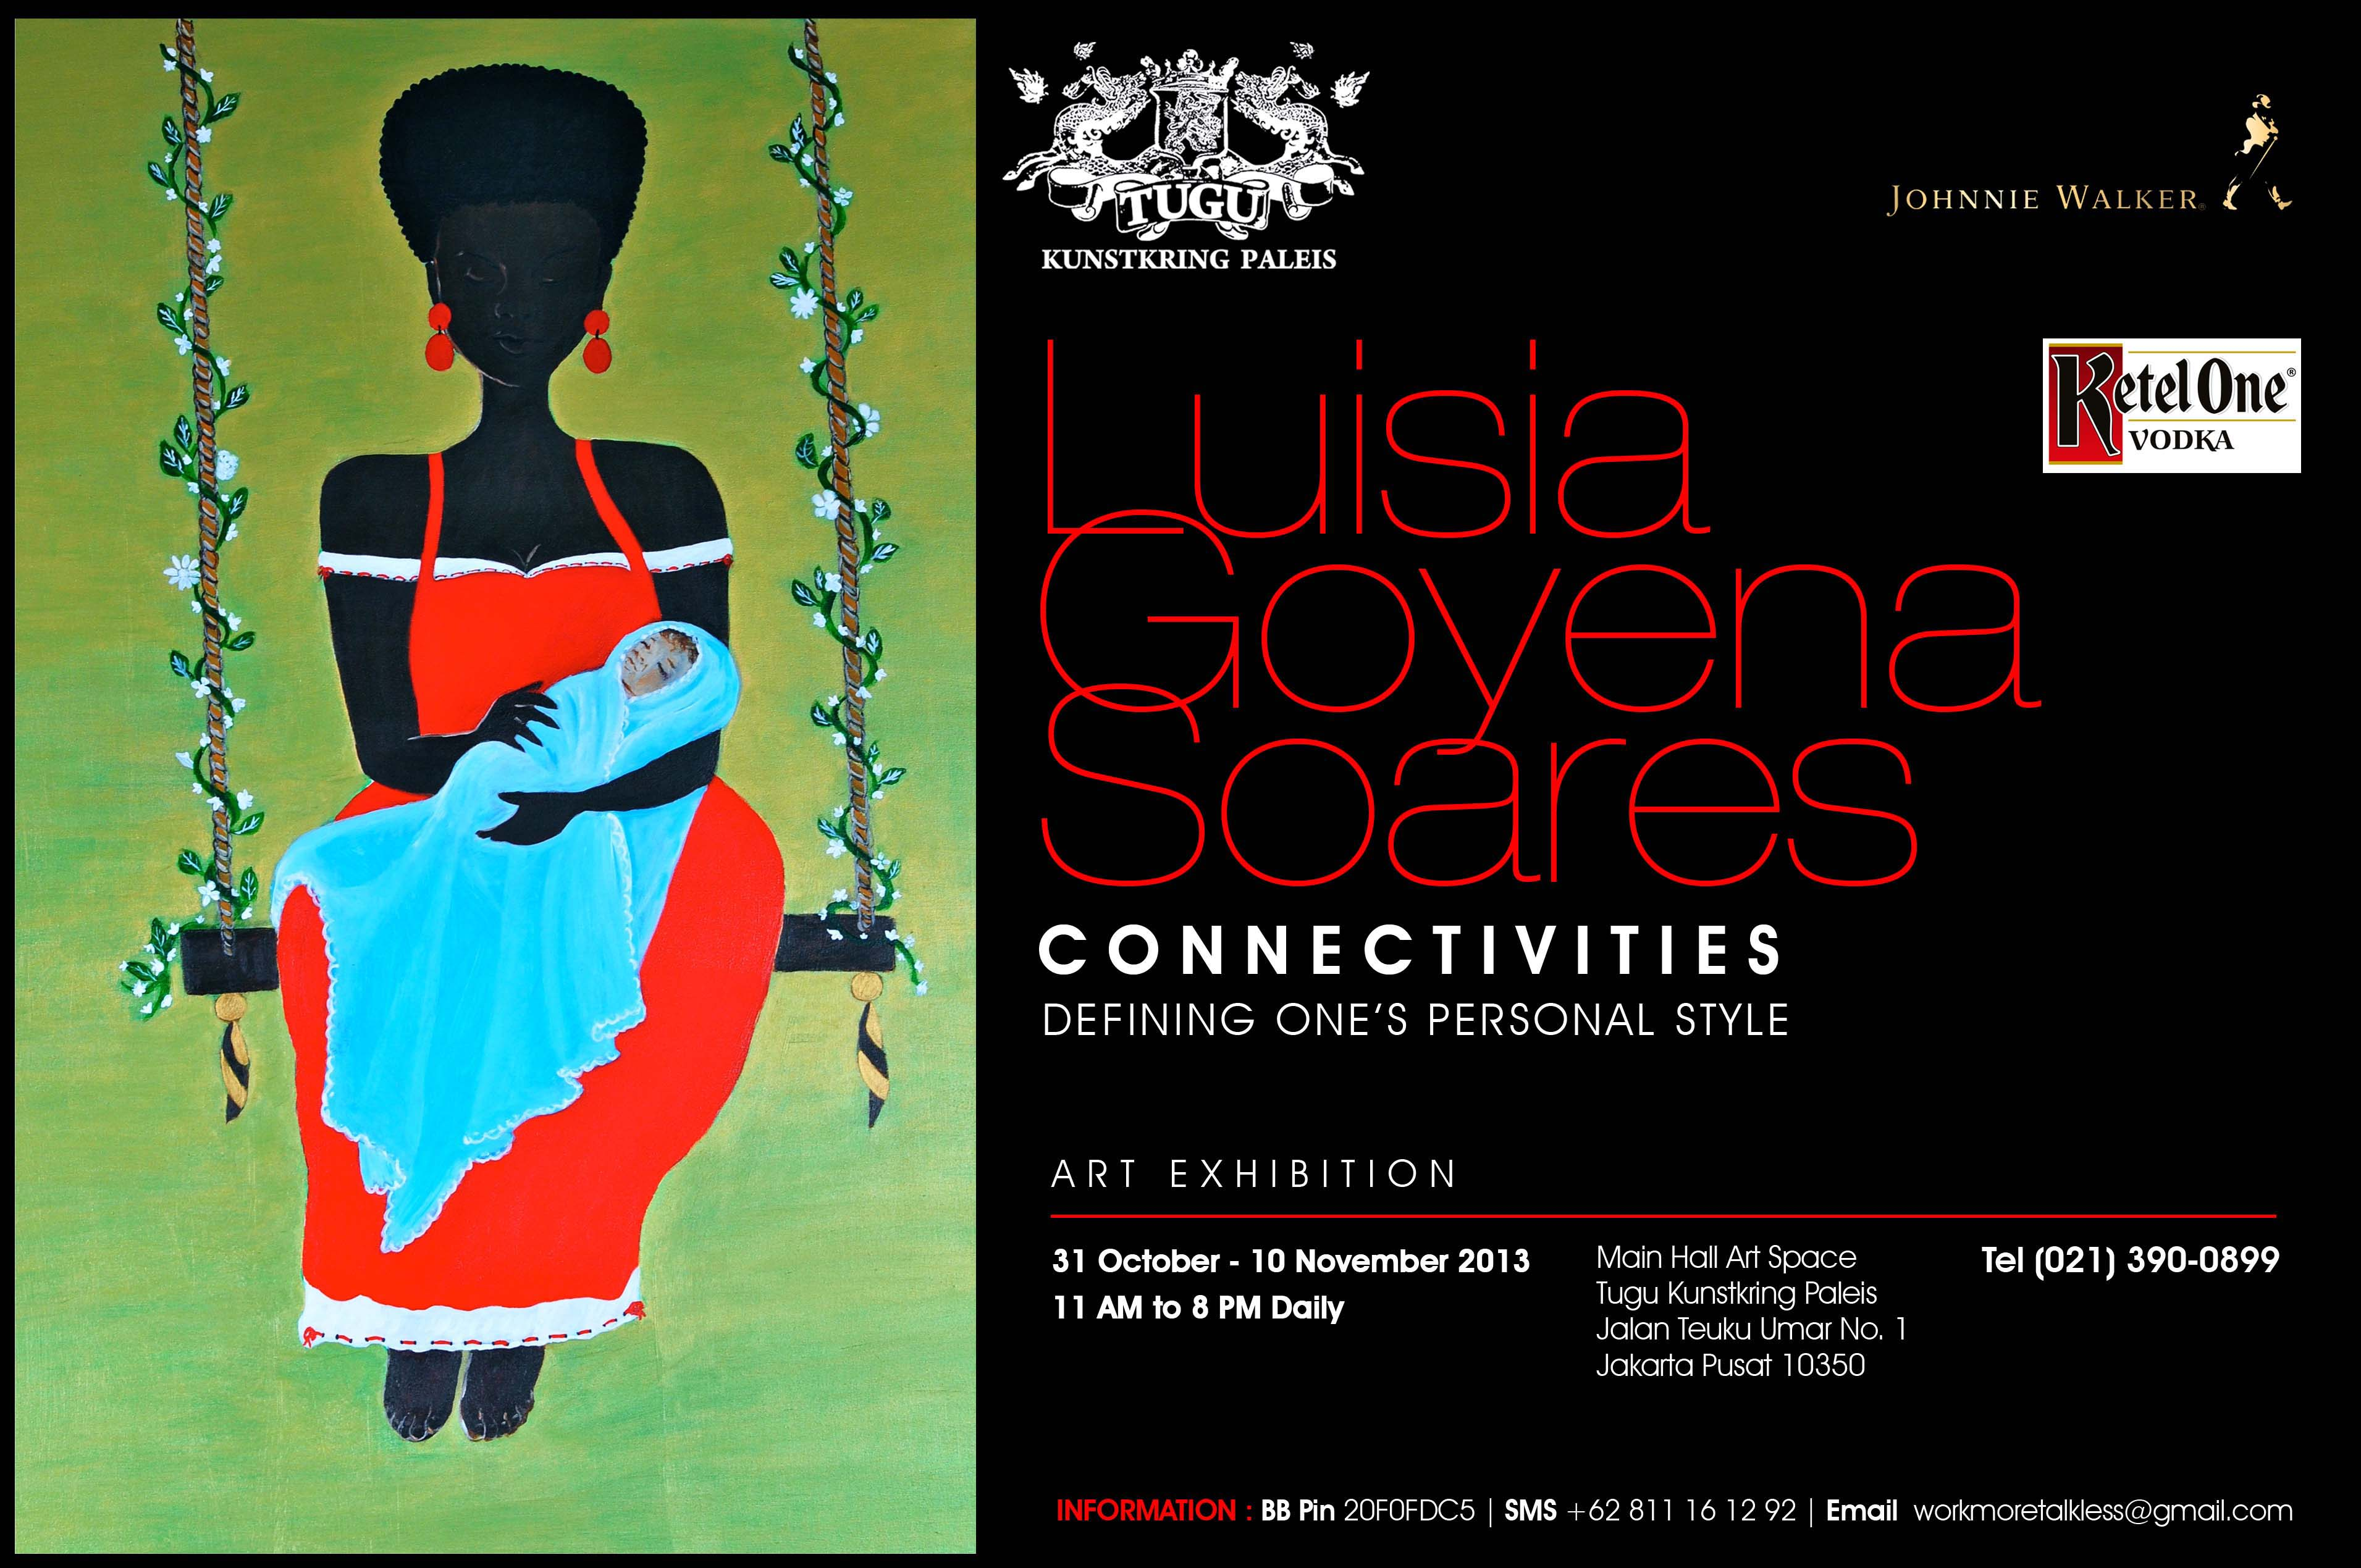 luisia goyena soares connectivities - defining one's personal style at tugu kunstkring paleis